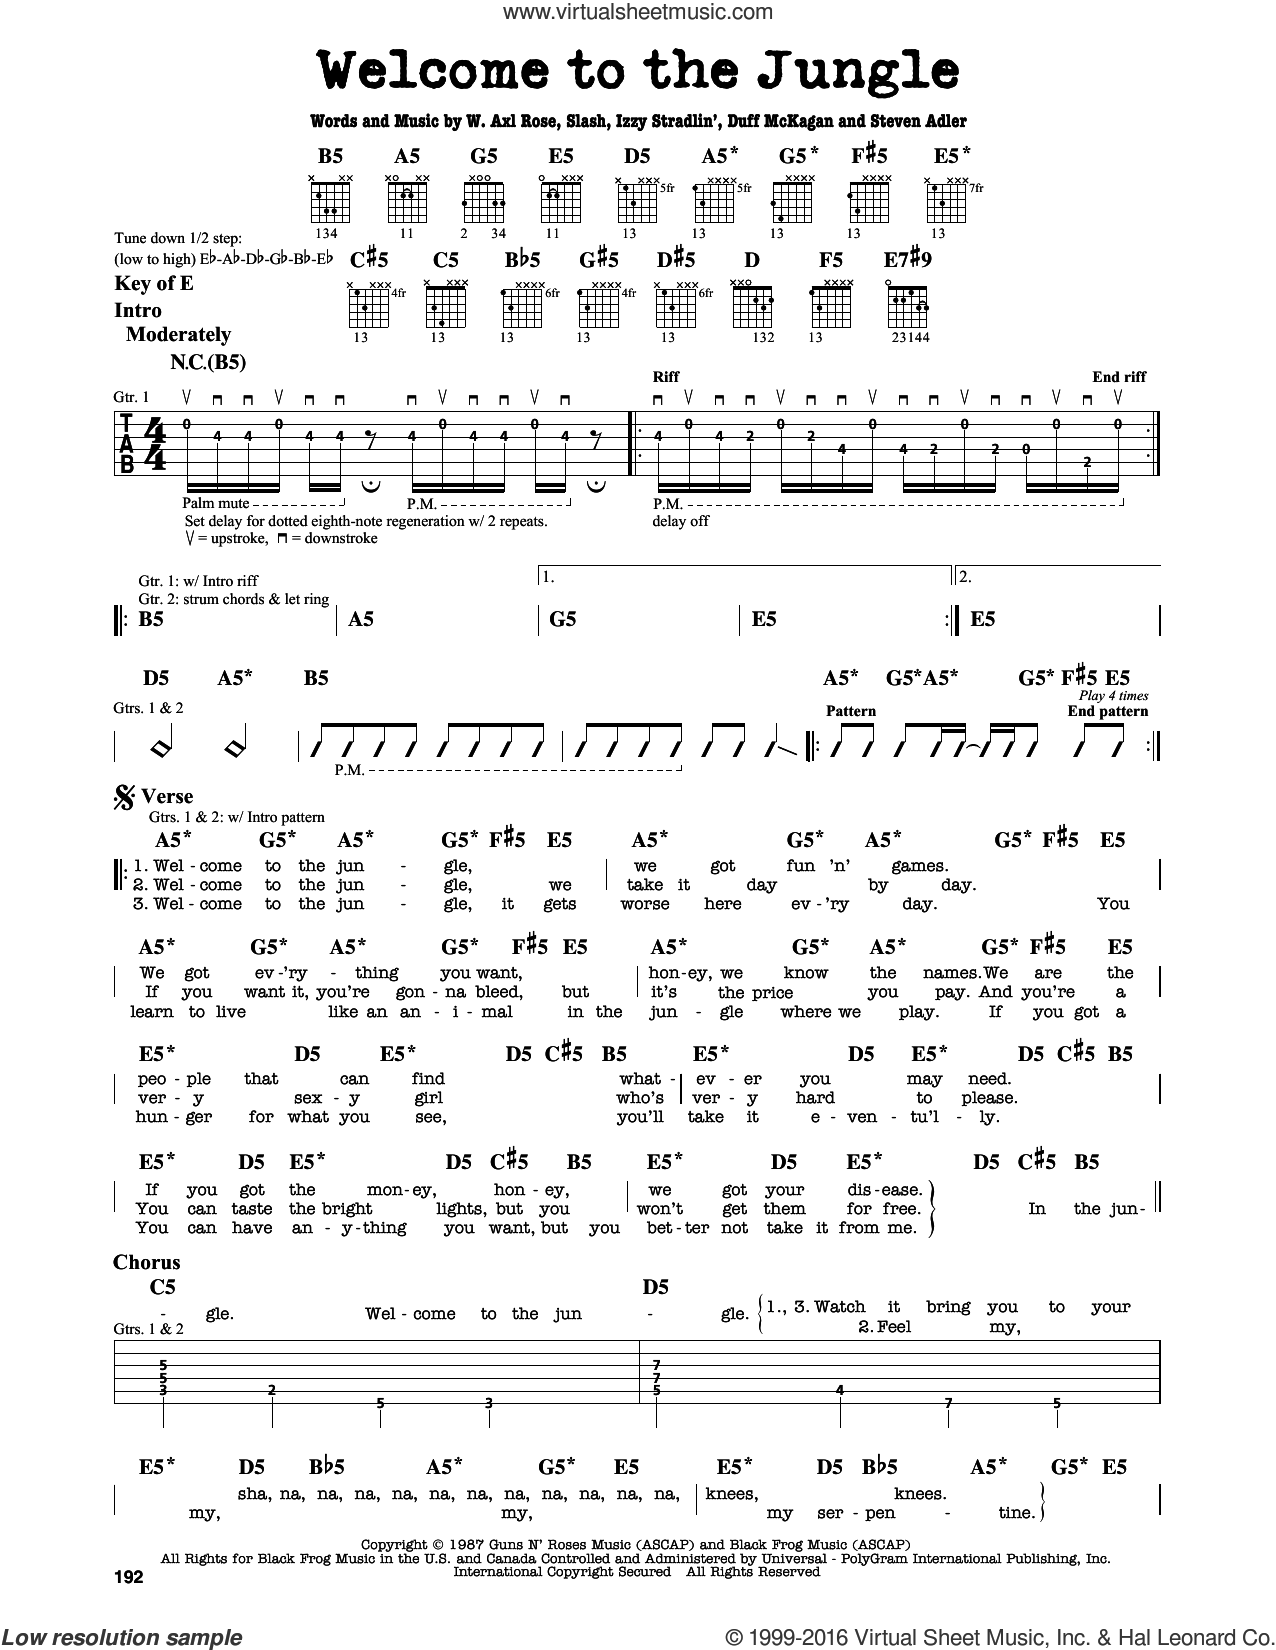 Welcome To The Jungle sheet music for guitar solo (lead sheet) by Guns N' Roses, Axl Rose, Duff McKagan, Slash and Steven Adler, intermediate guitar (lead sheet)